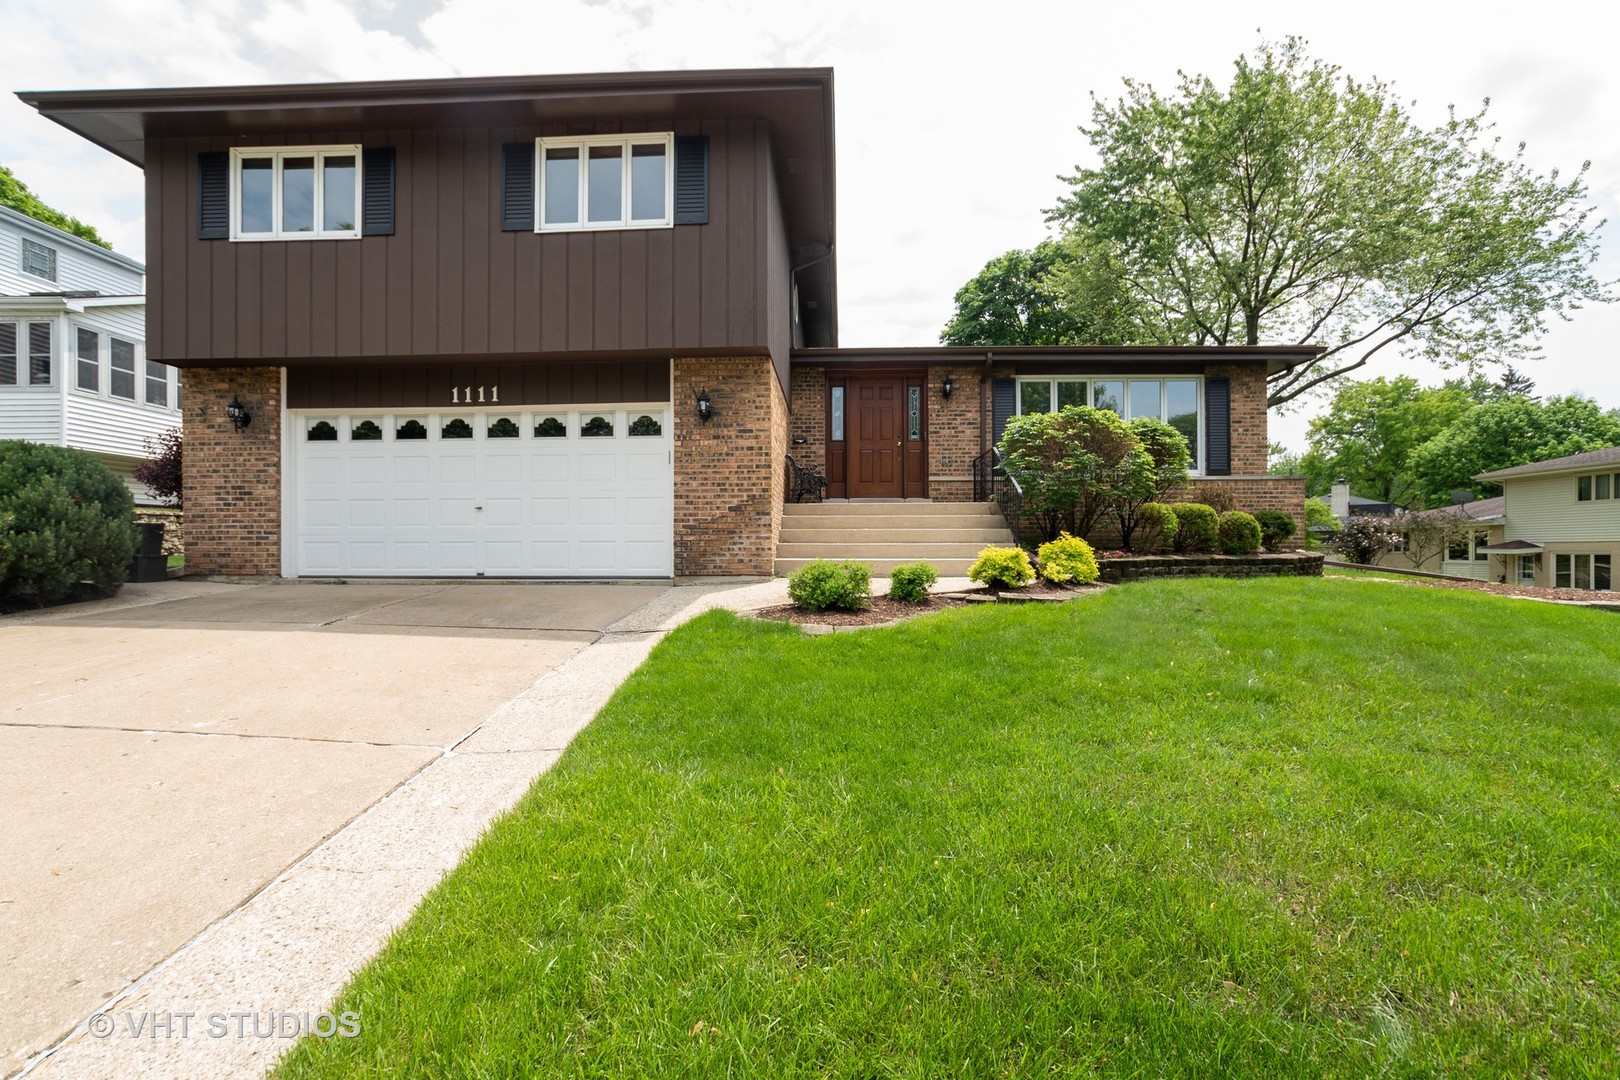 Photo for 1111 39th Street, DOWNERS GROVE, IL 60515 (MLS # 10402714)